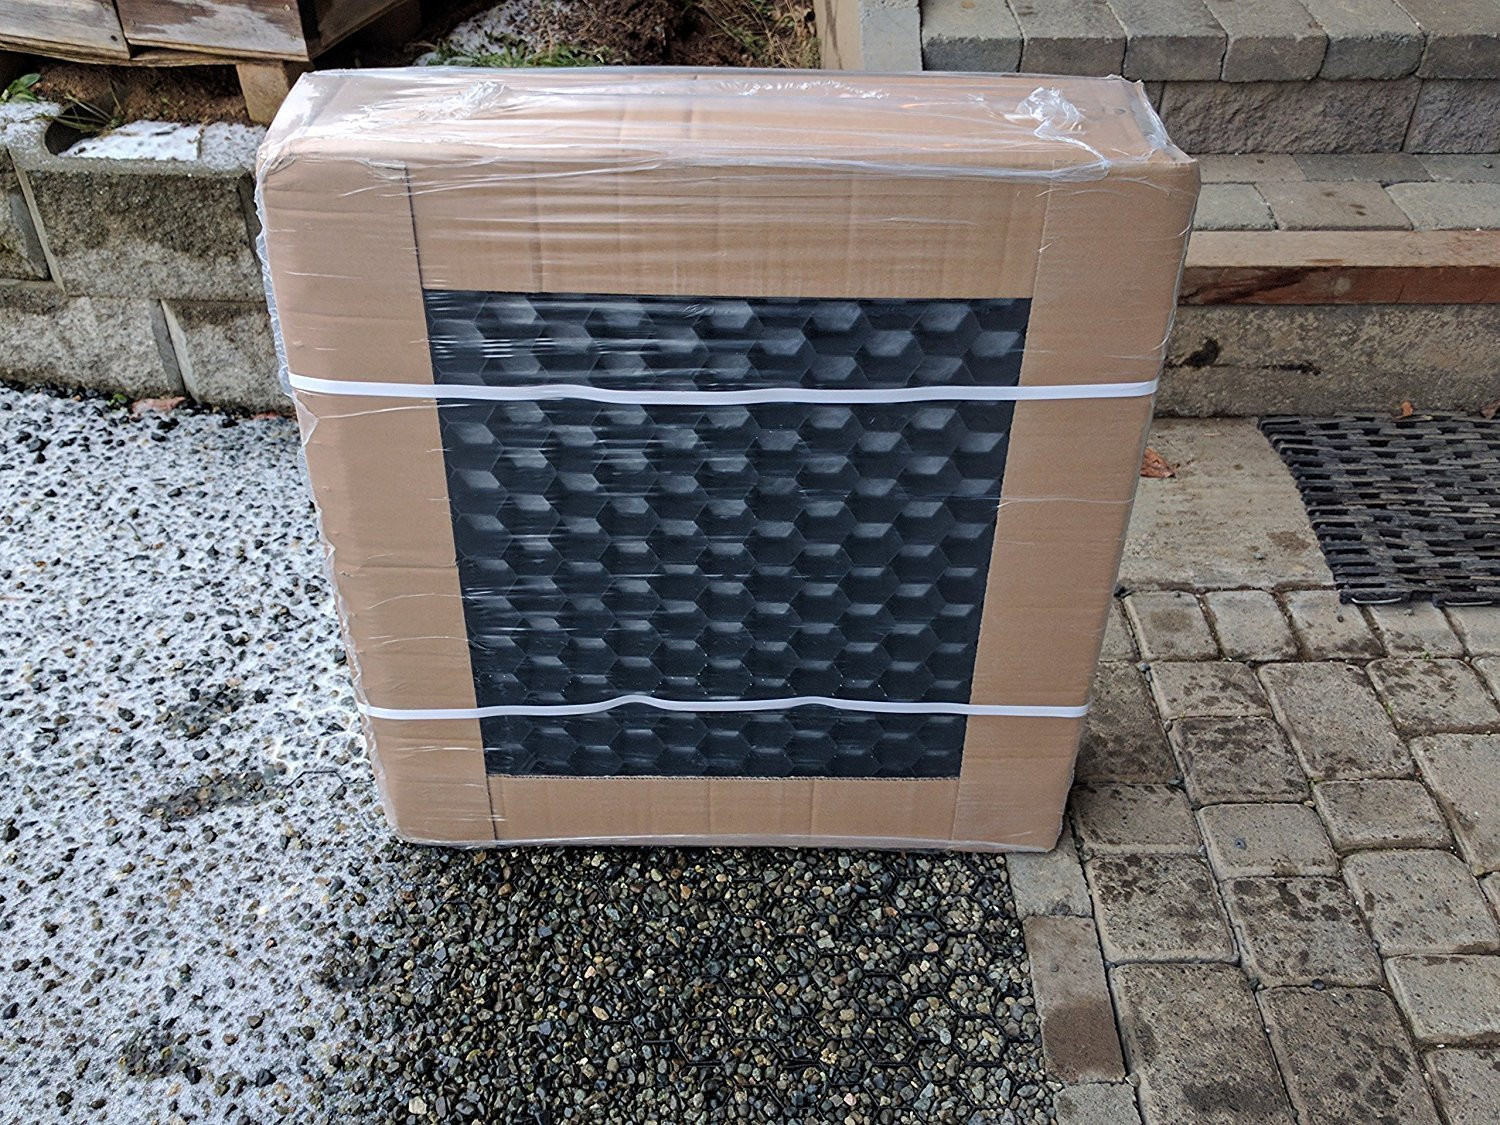 CORE Drive-Gravel Stabilizer Grids With Attached Weed Control Membrane. Perfect For Homeowner Driveways&Parking Areas. Each Pack will cover a total area of 33 sq.ft